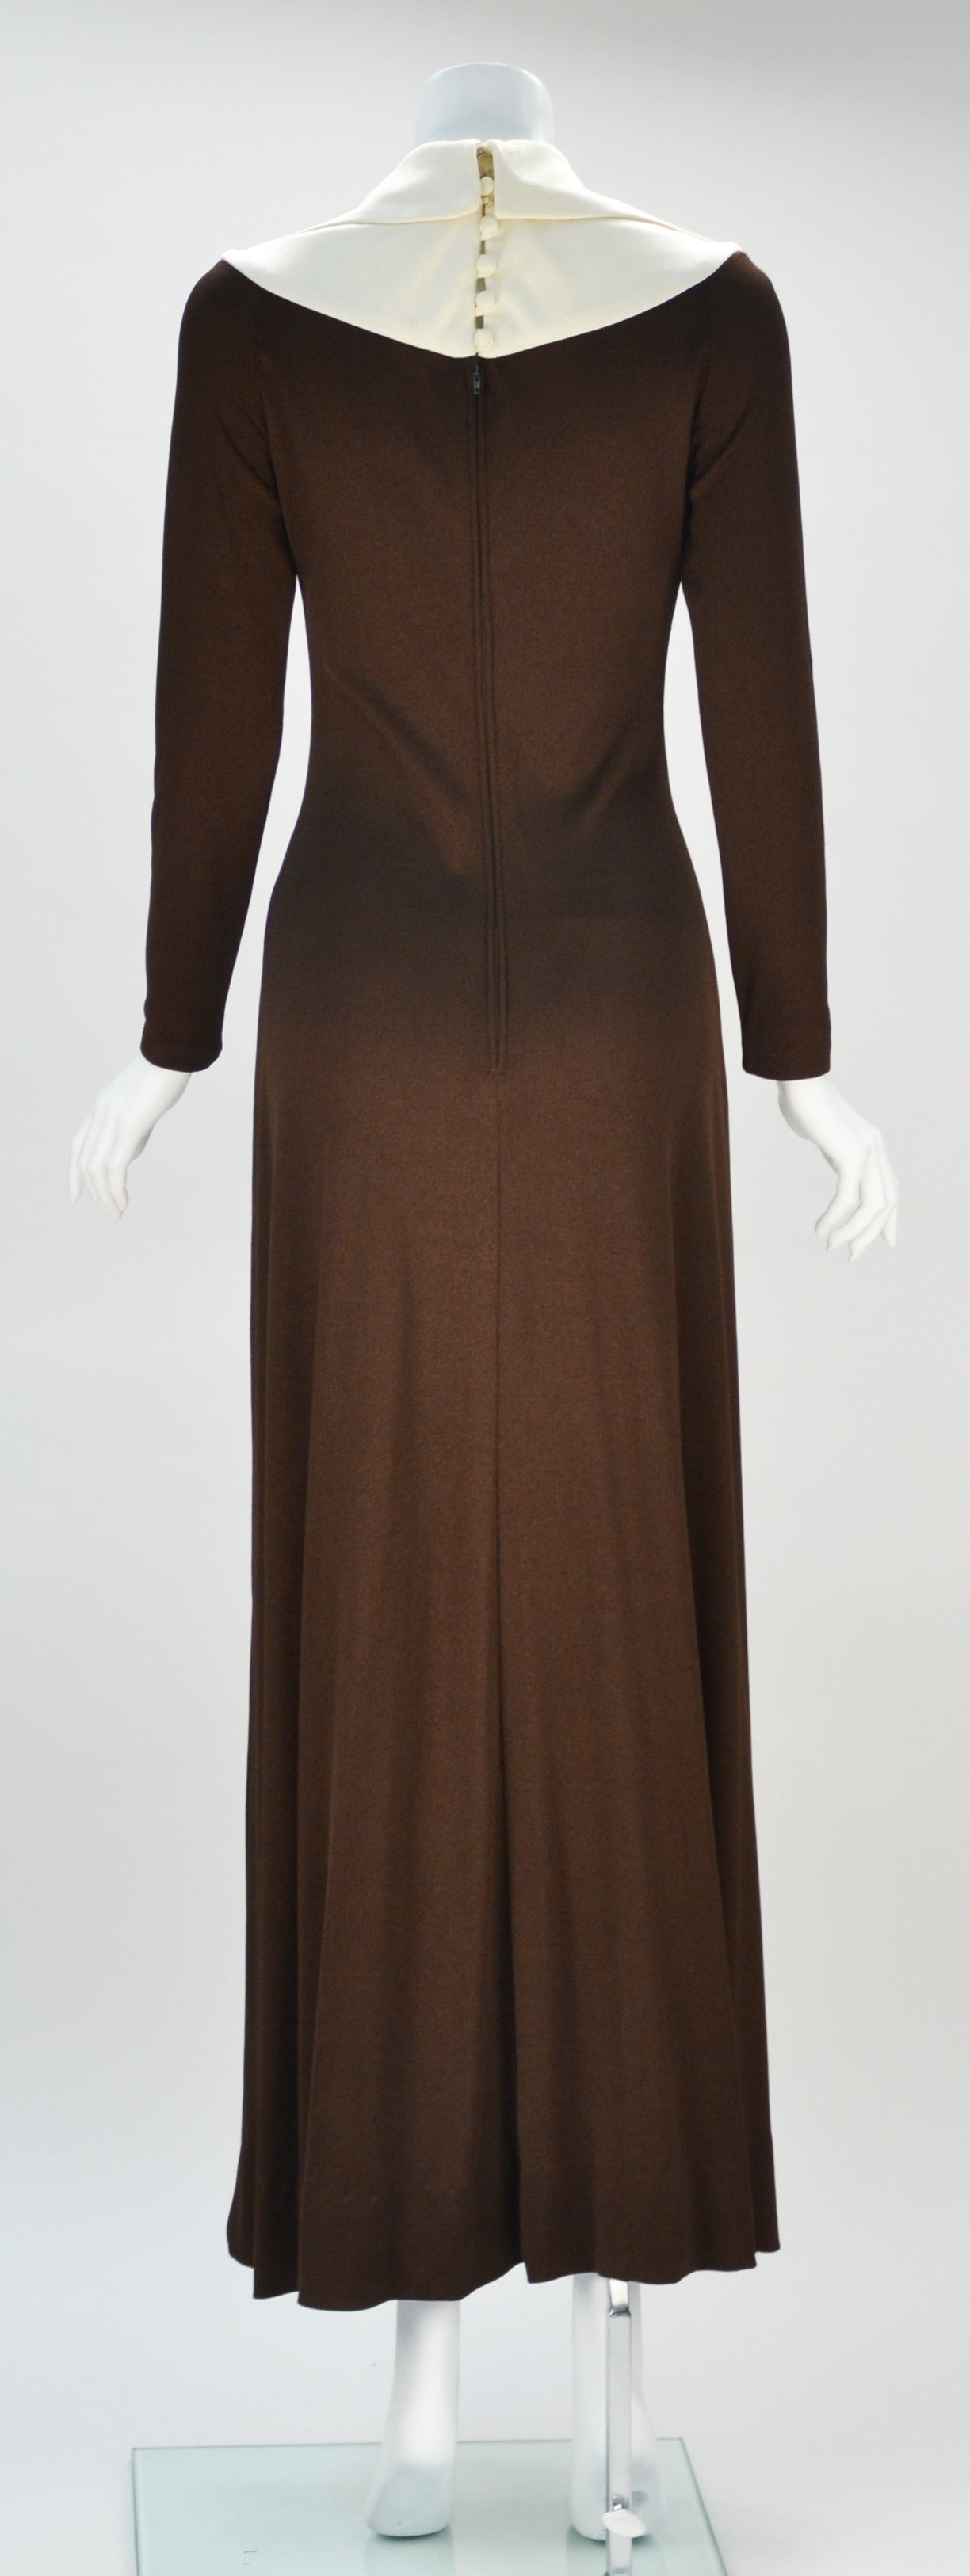 1970s Estévez Colorblock Hourglass Dress  Gorgeous 1970's chocolate brown and white colorblock floor length dress by Luis Estévez. This long sleeve, knitwear dress strikes a careful balance between alluring, playful, and austere. The dress flares